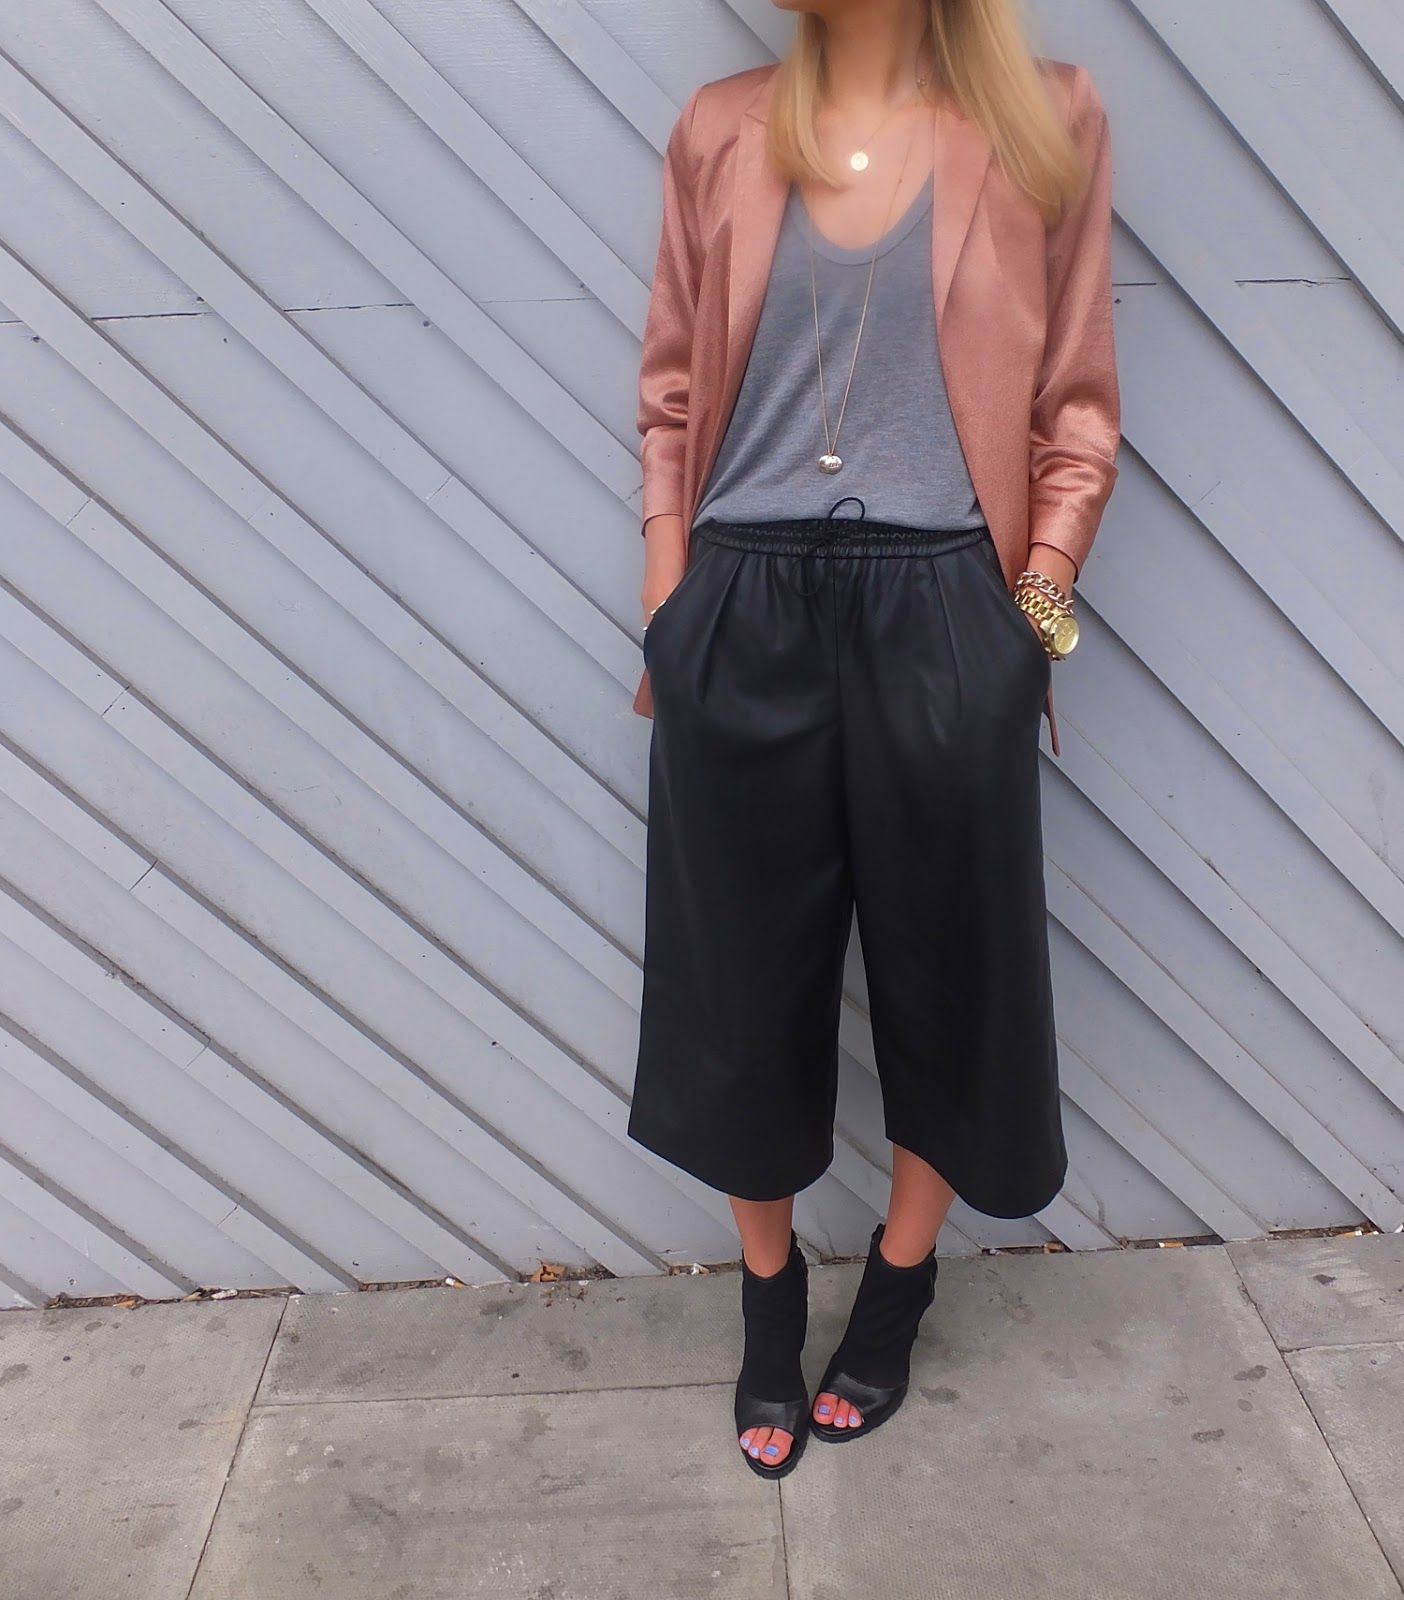 zara leather culottes - szukaj w google | fashion | pinterest